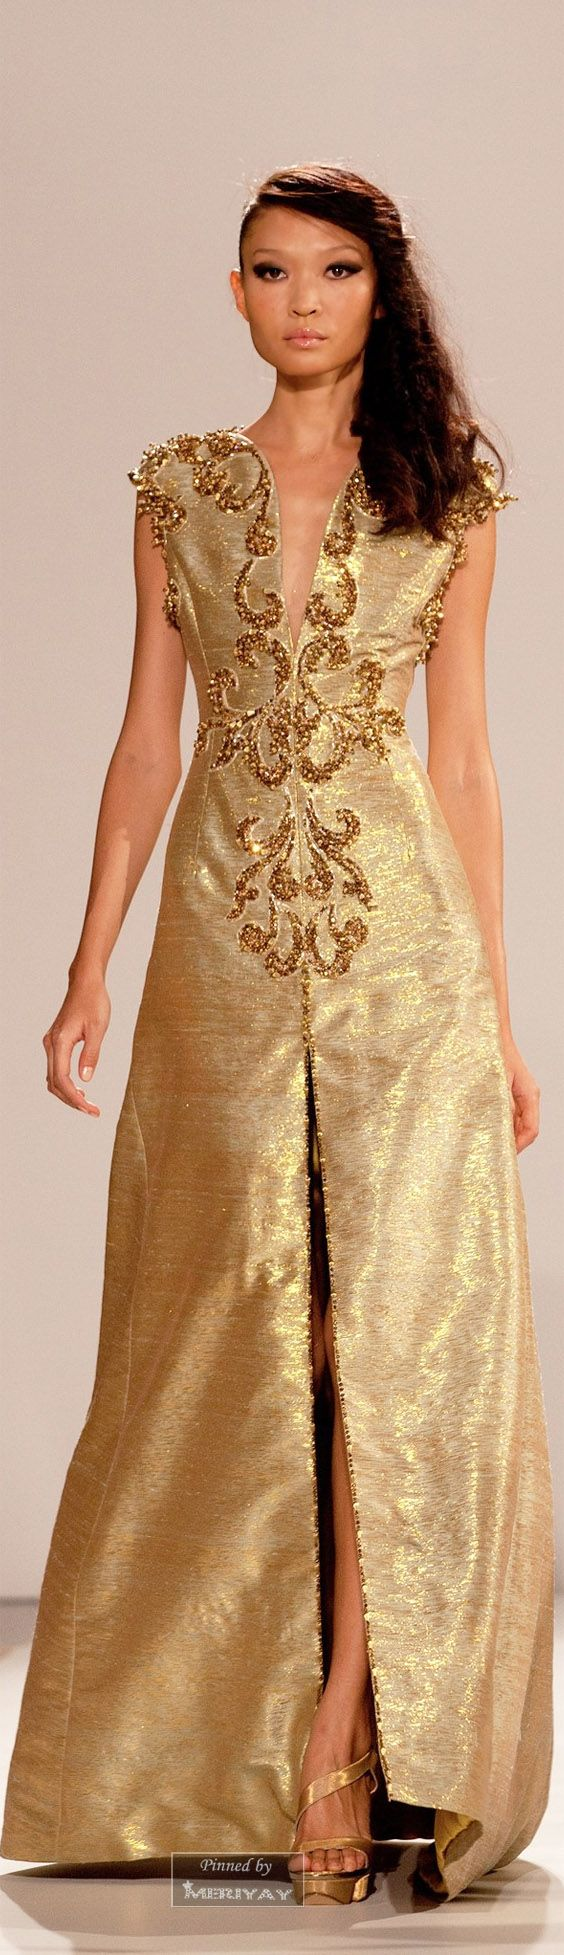 best gold images on pinterest gold fashion high fashion and